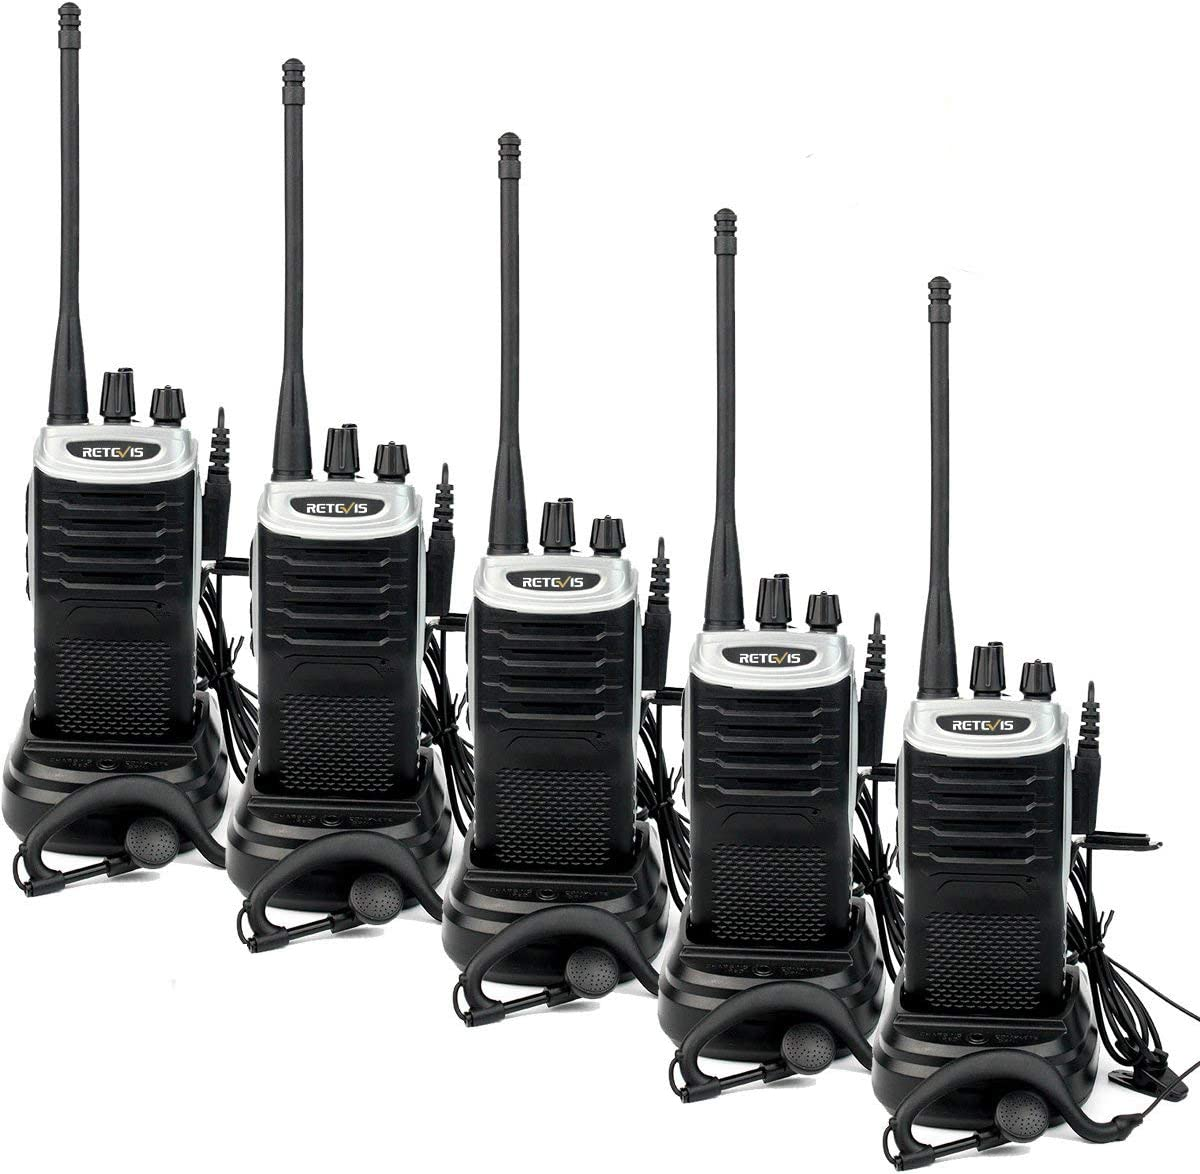 Retevis RT7 Walkie Talkies Rechargeable 16 CH UHF FM Two Way Radio (Silver Black Border,5 Pack)